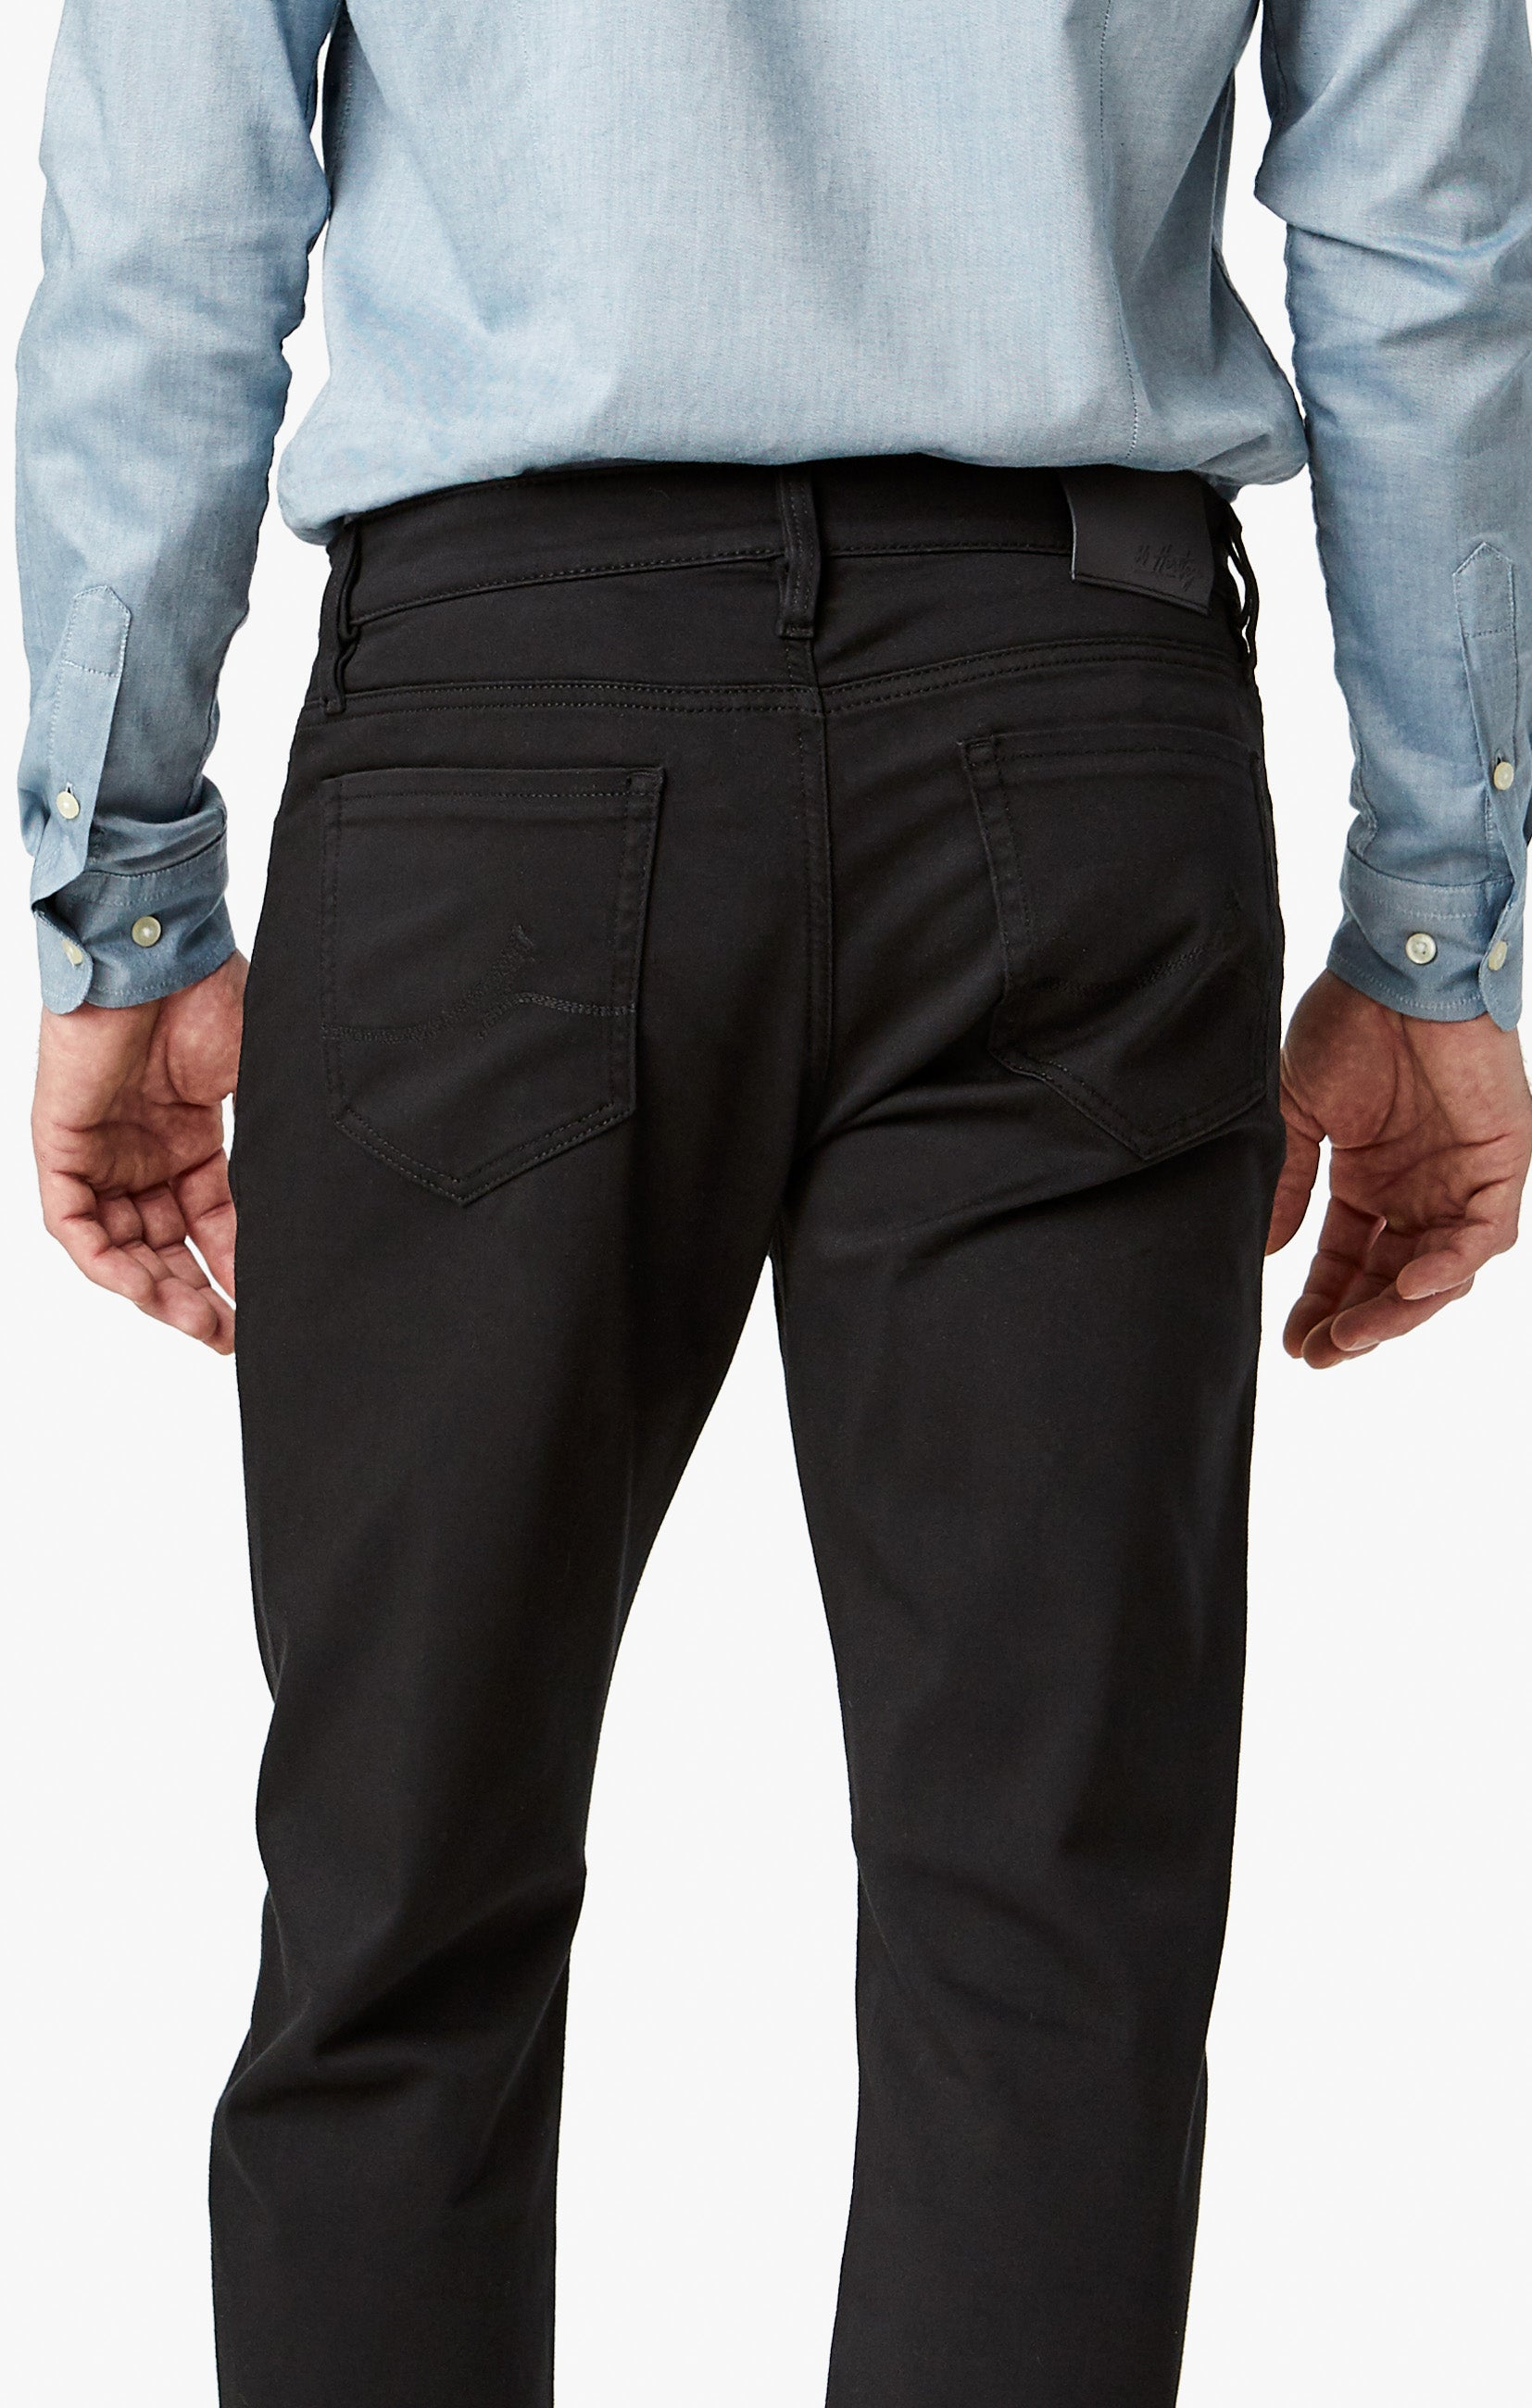 Courage Straight Leg Pants In Select Double Black Image 7